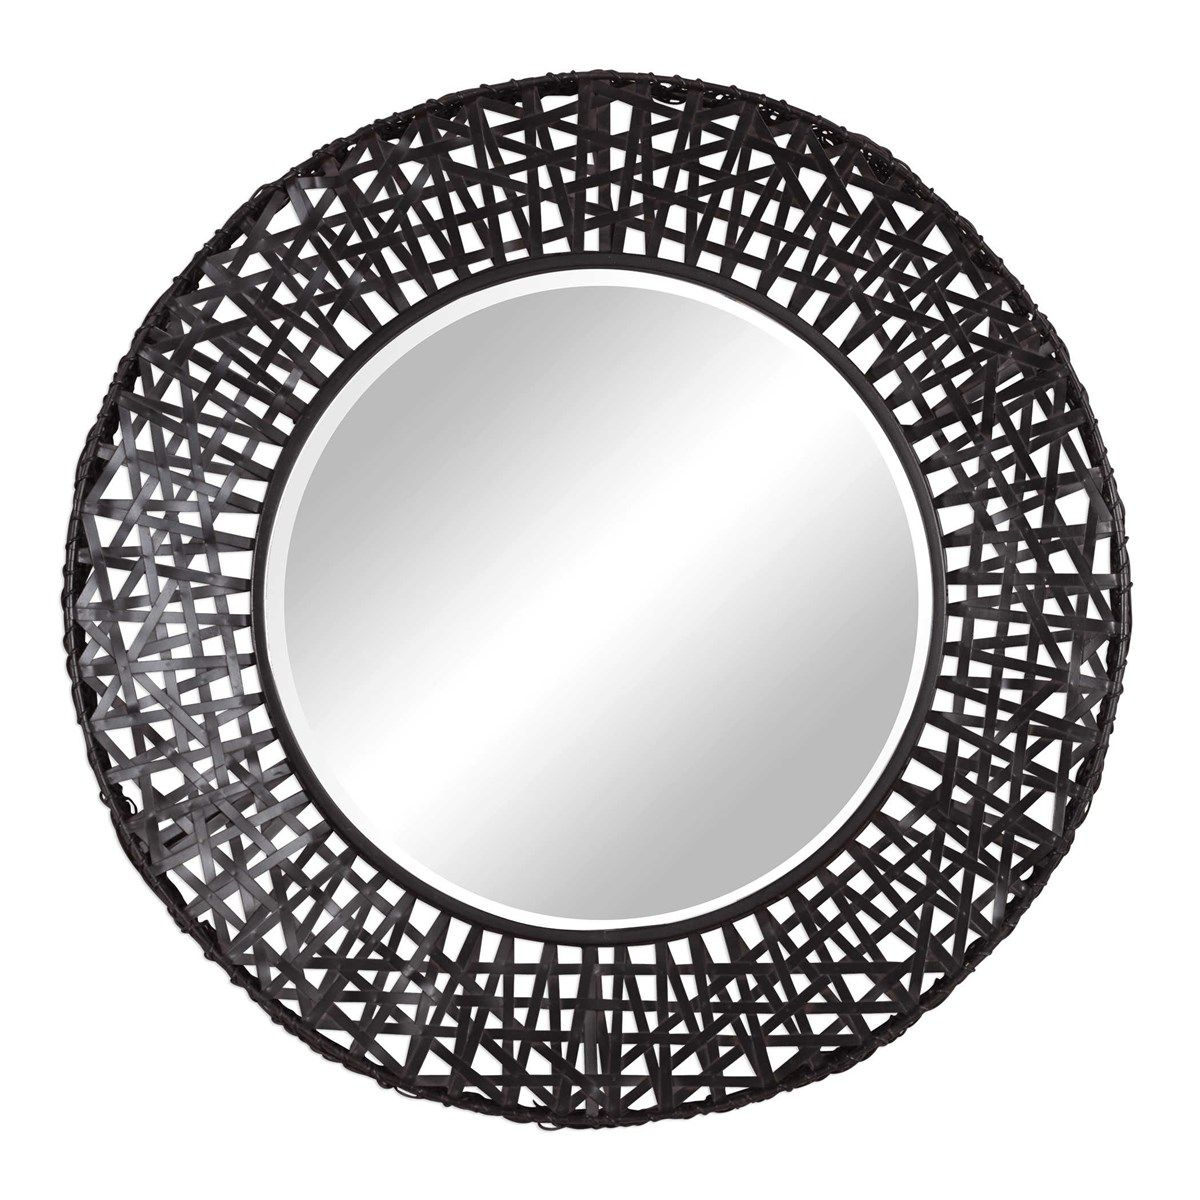 Uttermost Alita Woven Metal Mirror | Donovan In 2019 | Metal For Ogier Accent Mirrors (Image 19 of 20)